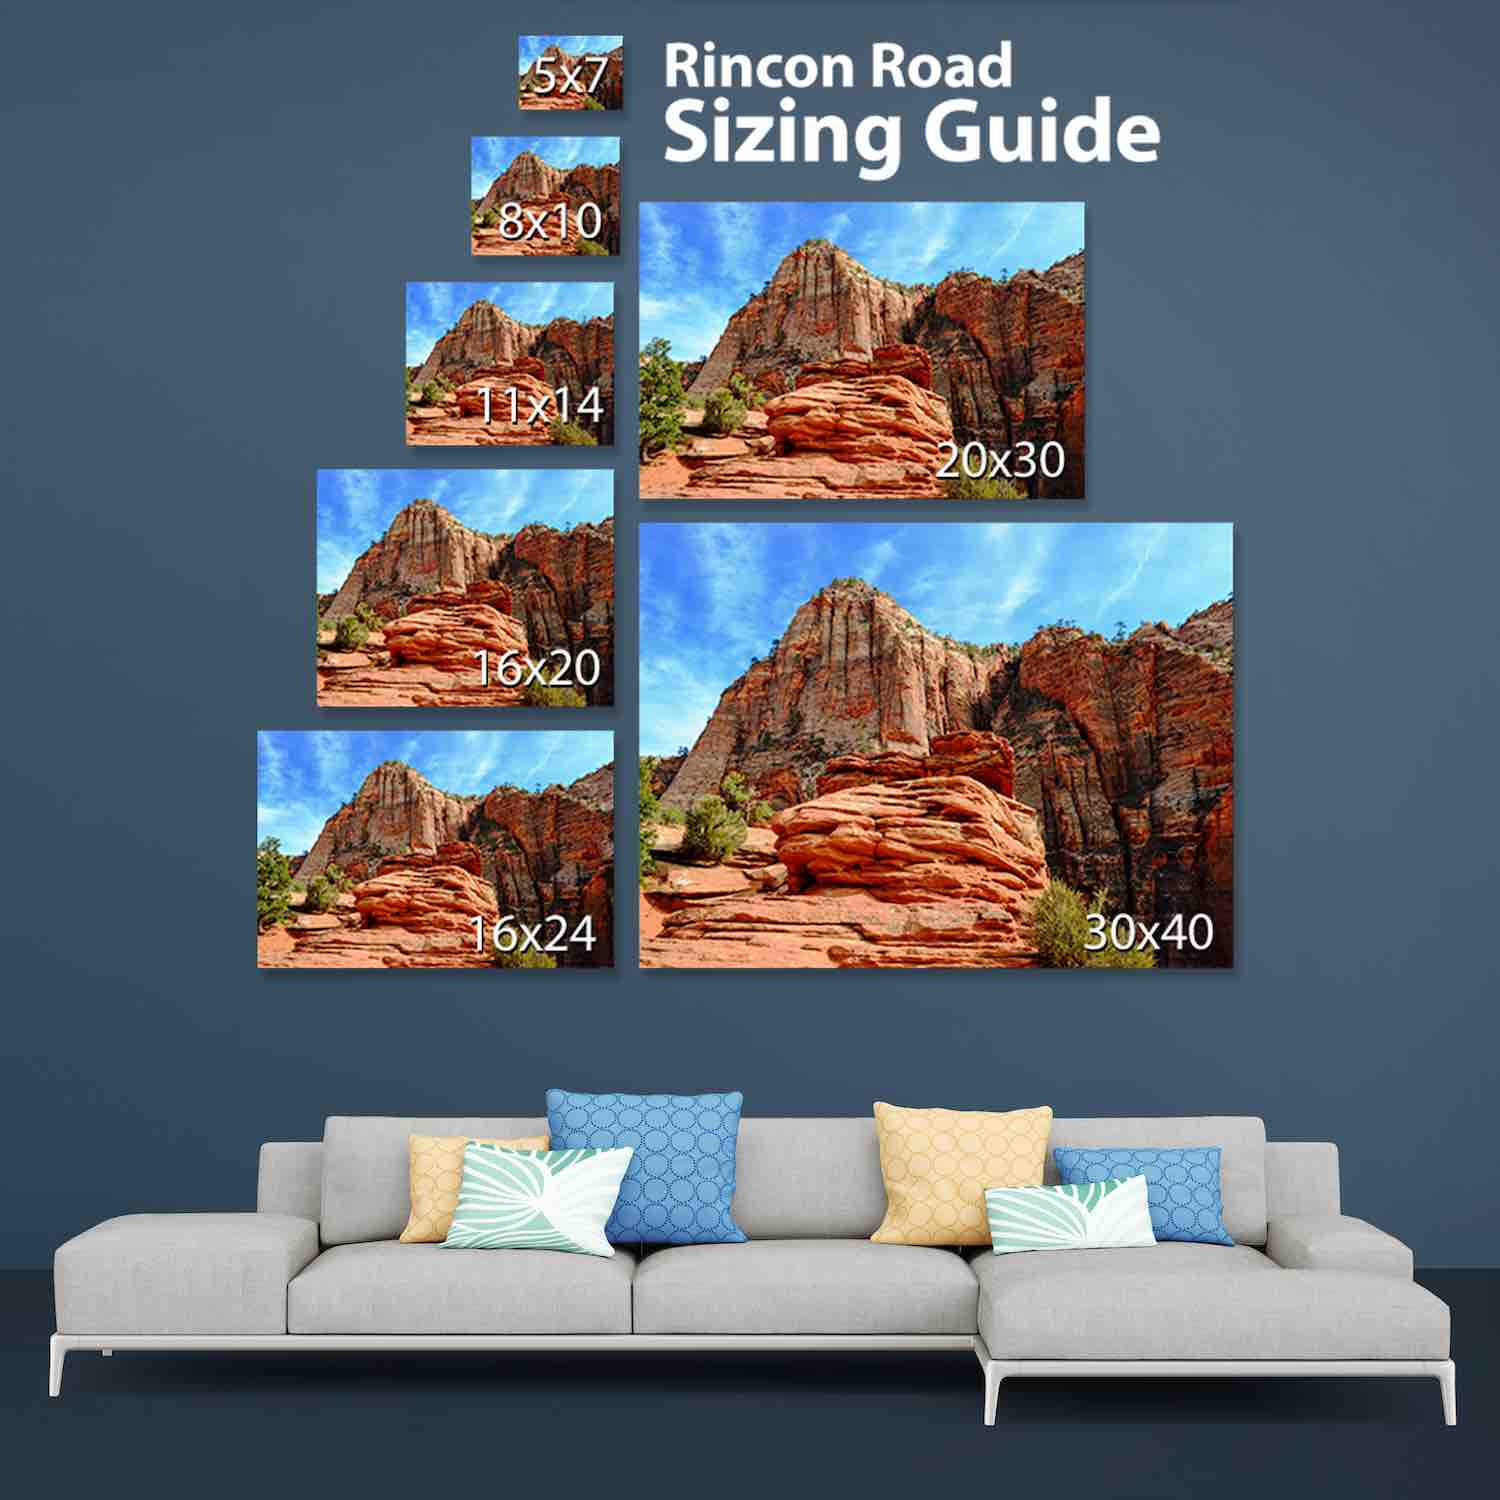 Rincon Road Photography Sizing Guide